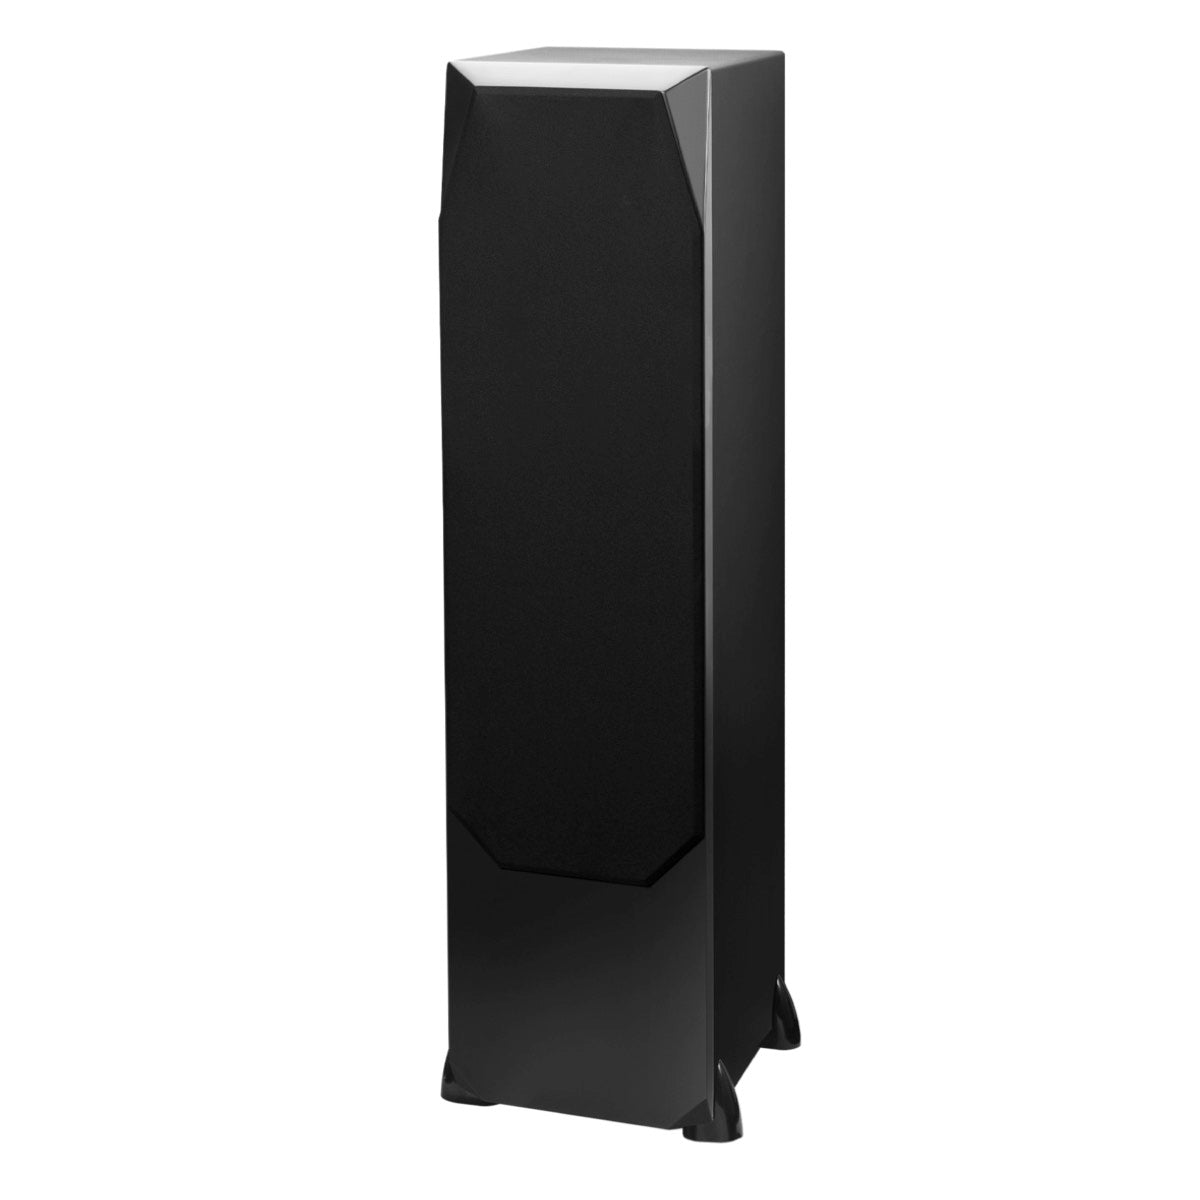 Emotiva Airmotiv T2+ Floor Standing Speaker - Pair, Emotiva, Floor Standing Speaker - AVStore.in